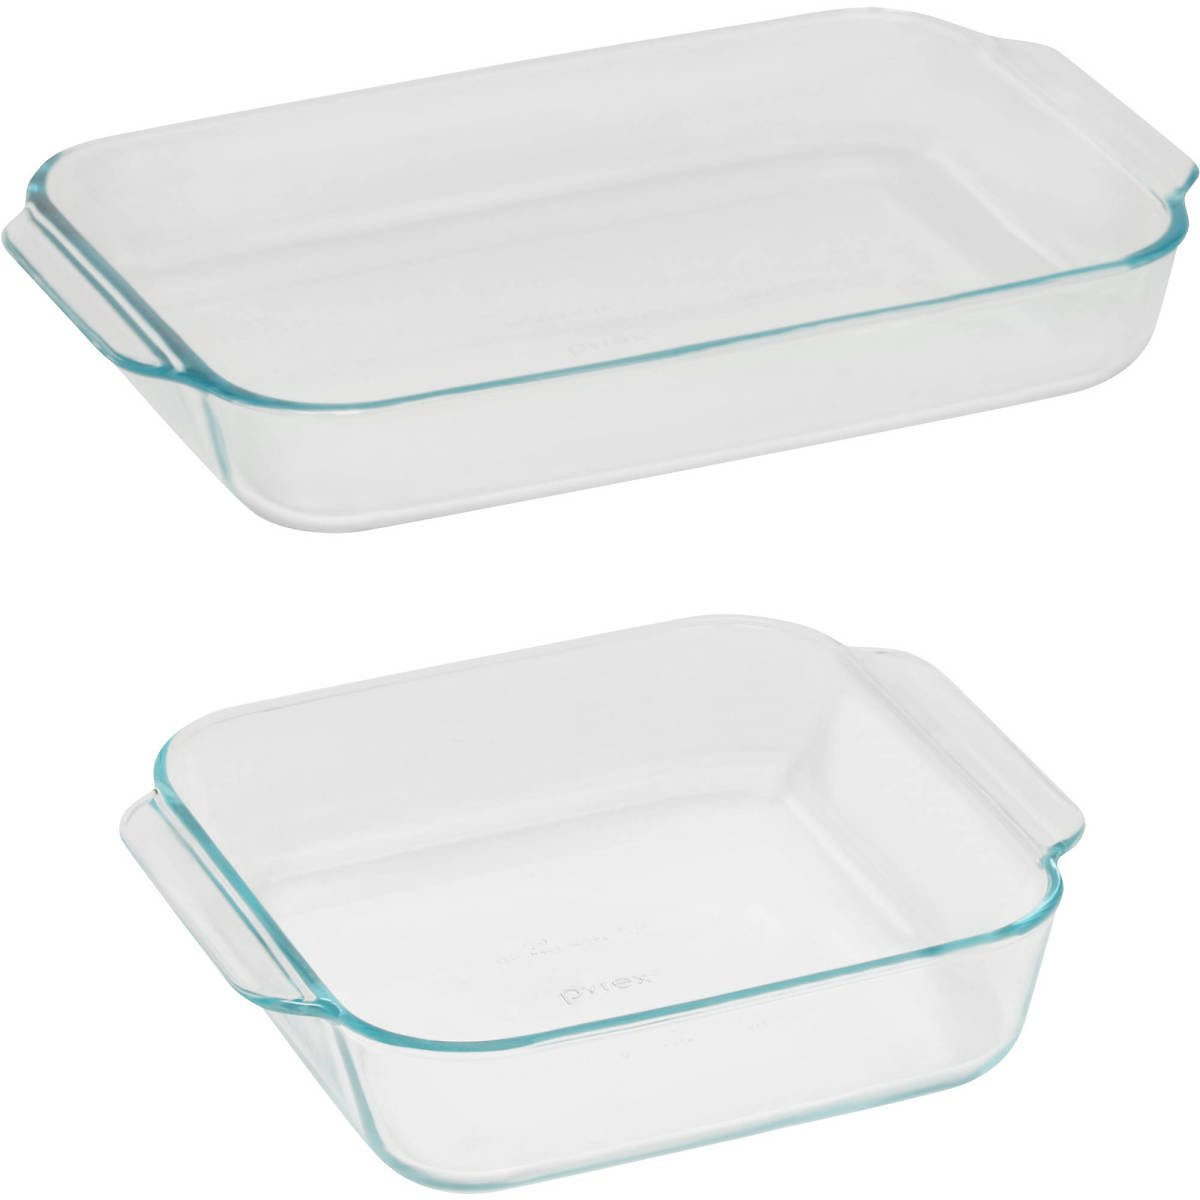 Pyrex Basics Glass Bakeware Set Value Pack, 2 Piece